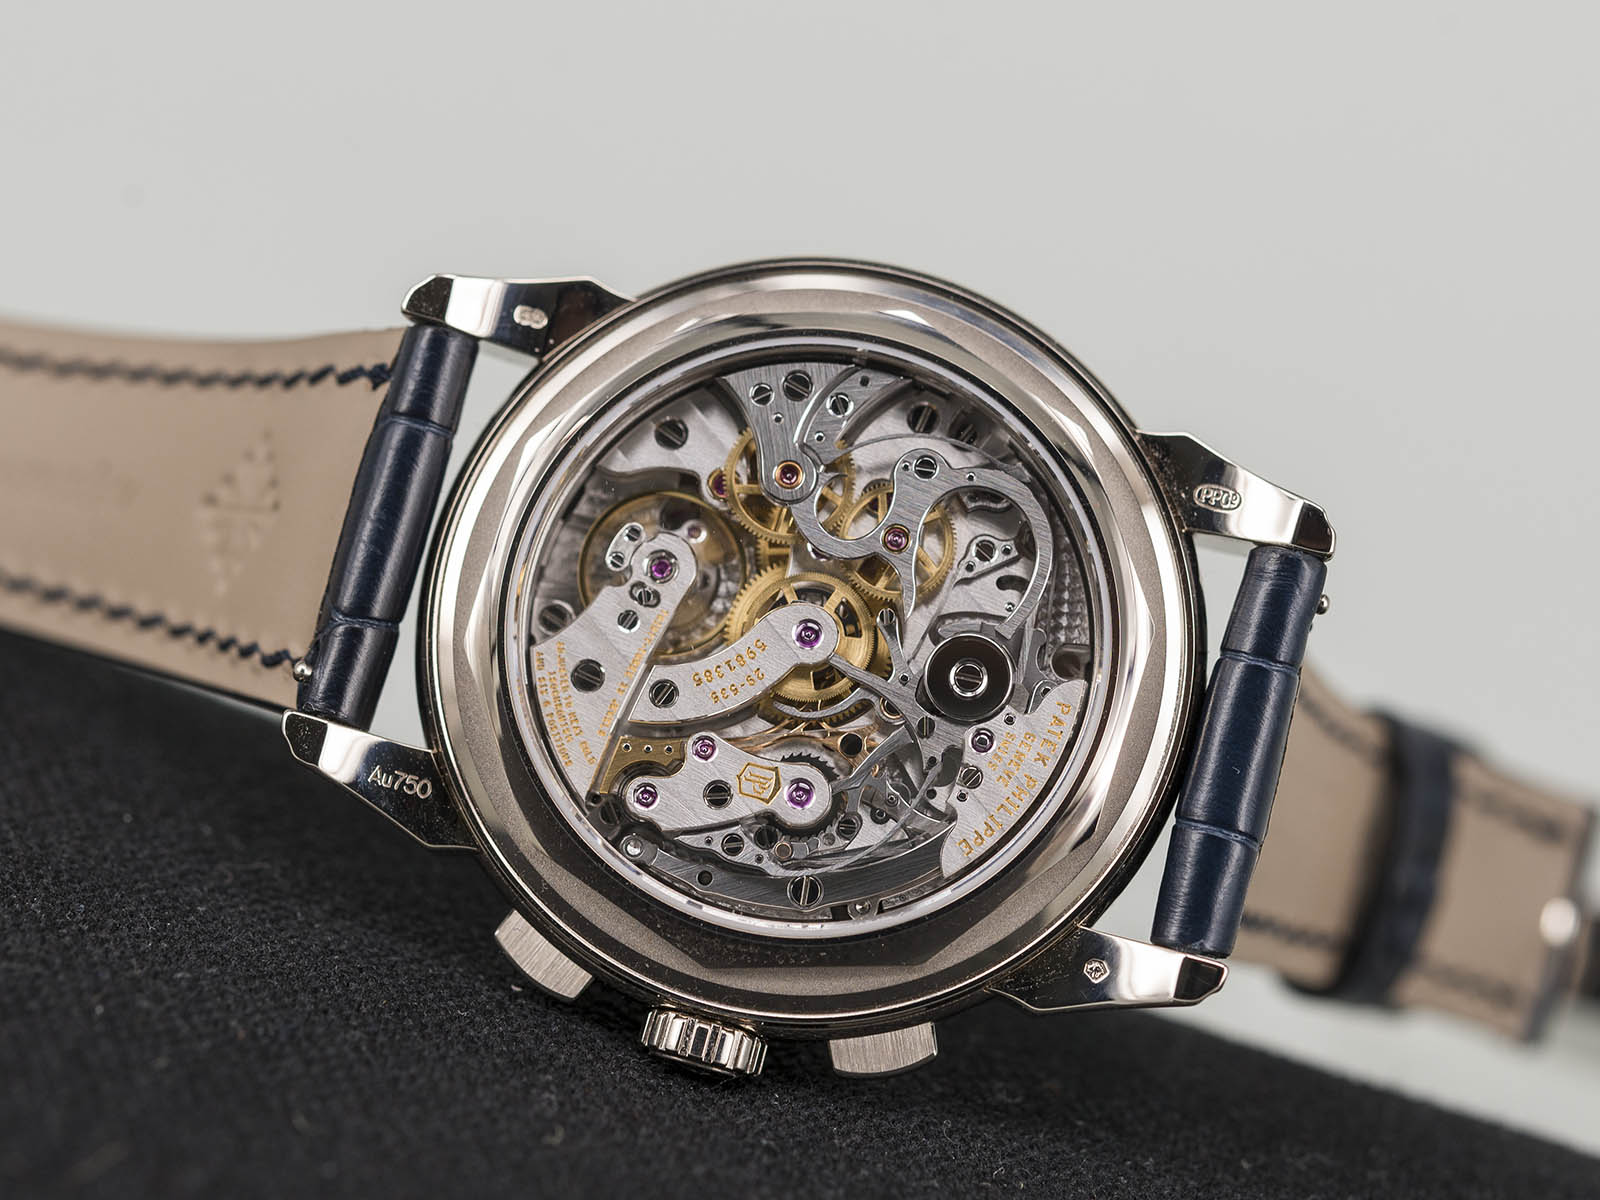 Patek-Philippe-Grand-Complications-5270-6.jpg